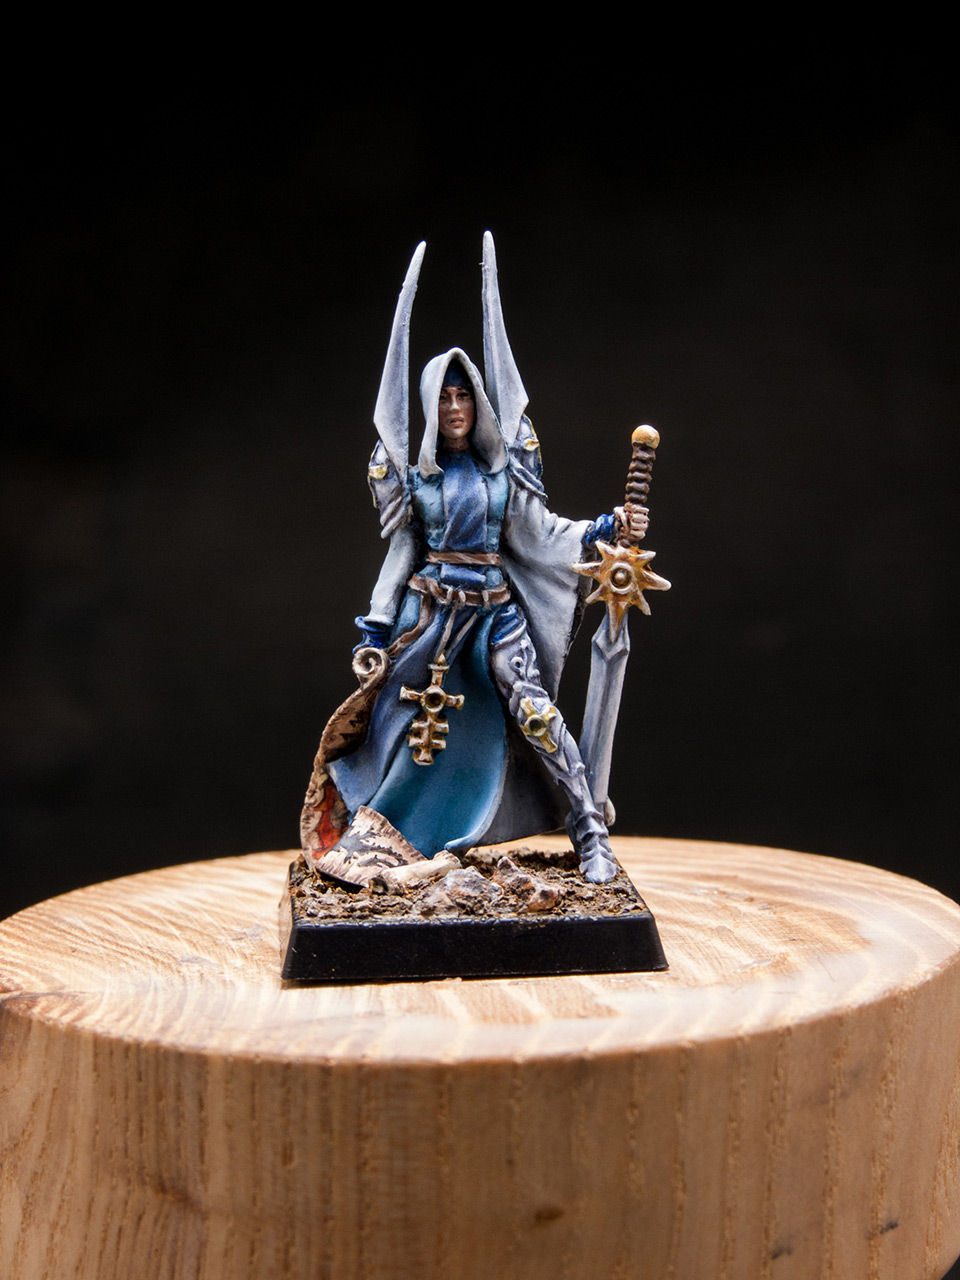 Miscellaneous: Tora, Sister of Inquisition, photo #1